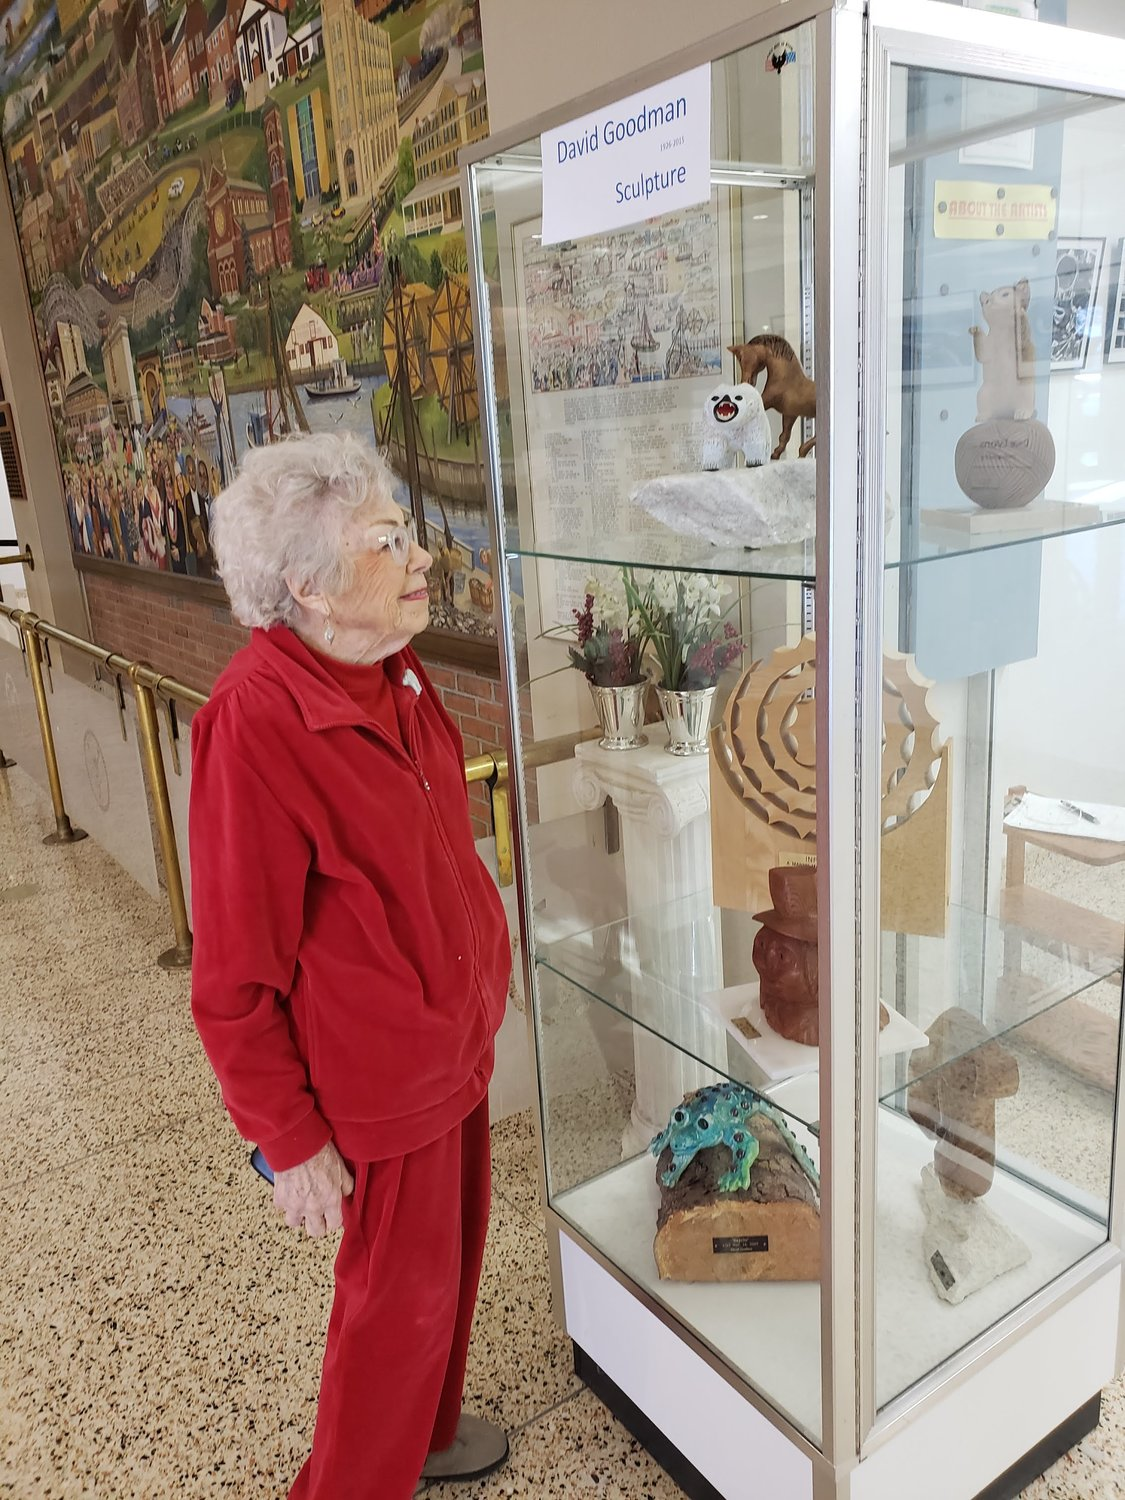 Merrick resident and wife of the late David Goodman, Blanche, admired her husband's wooden sculptures at the Freeport Recreation Center on Jan. 15.